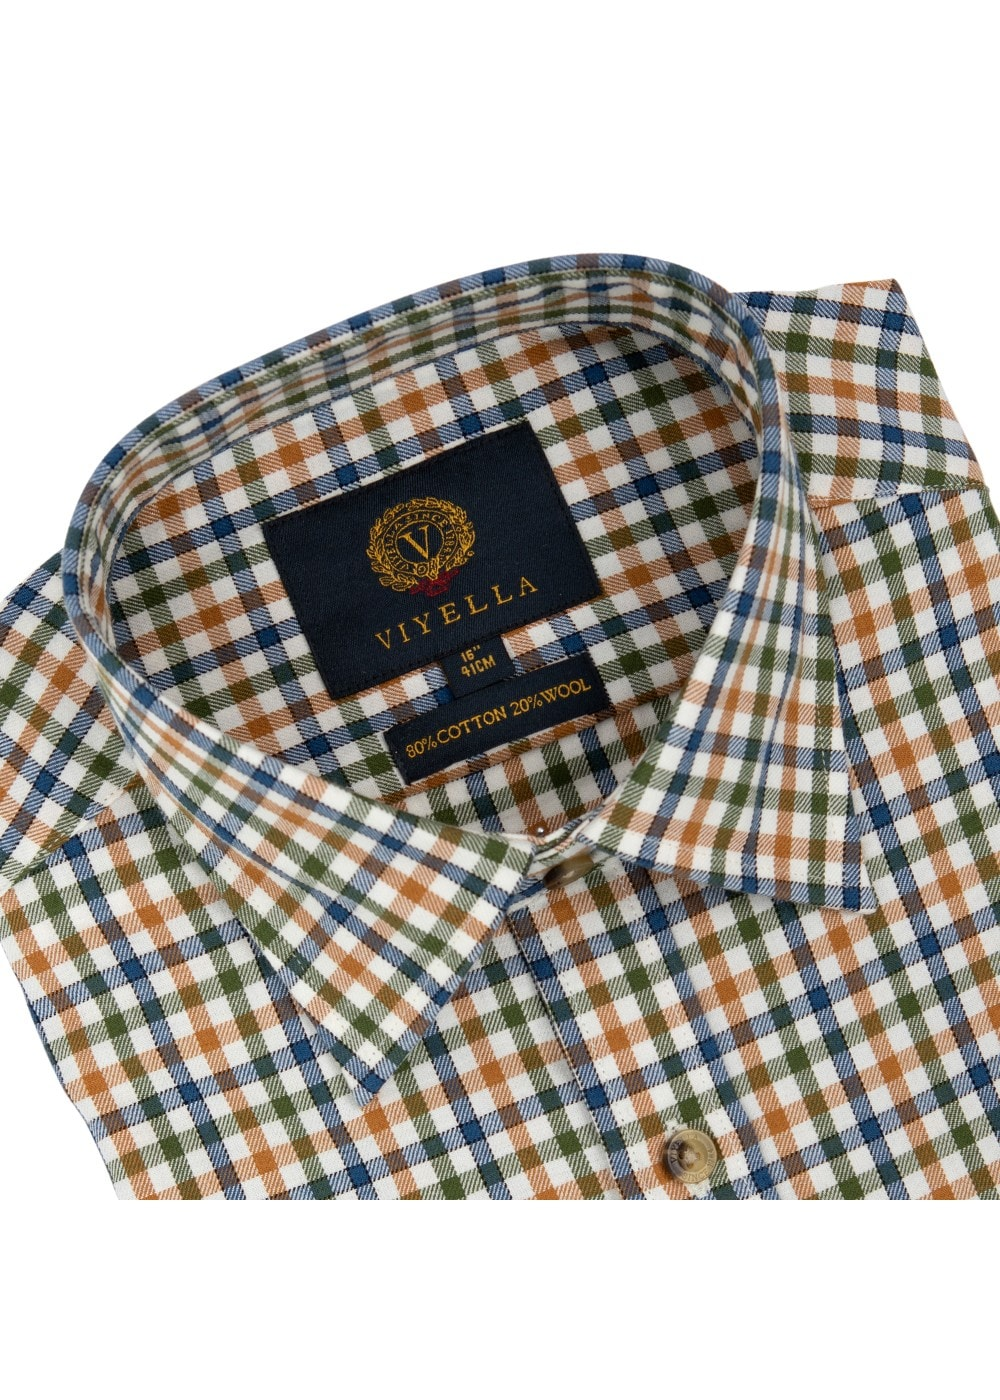 Viyella Club Check Shirt Mens From A Hume Uk